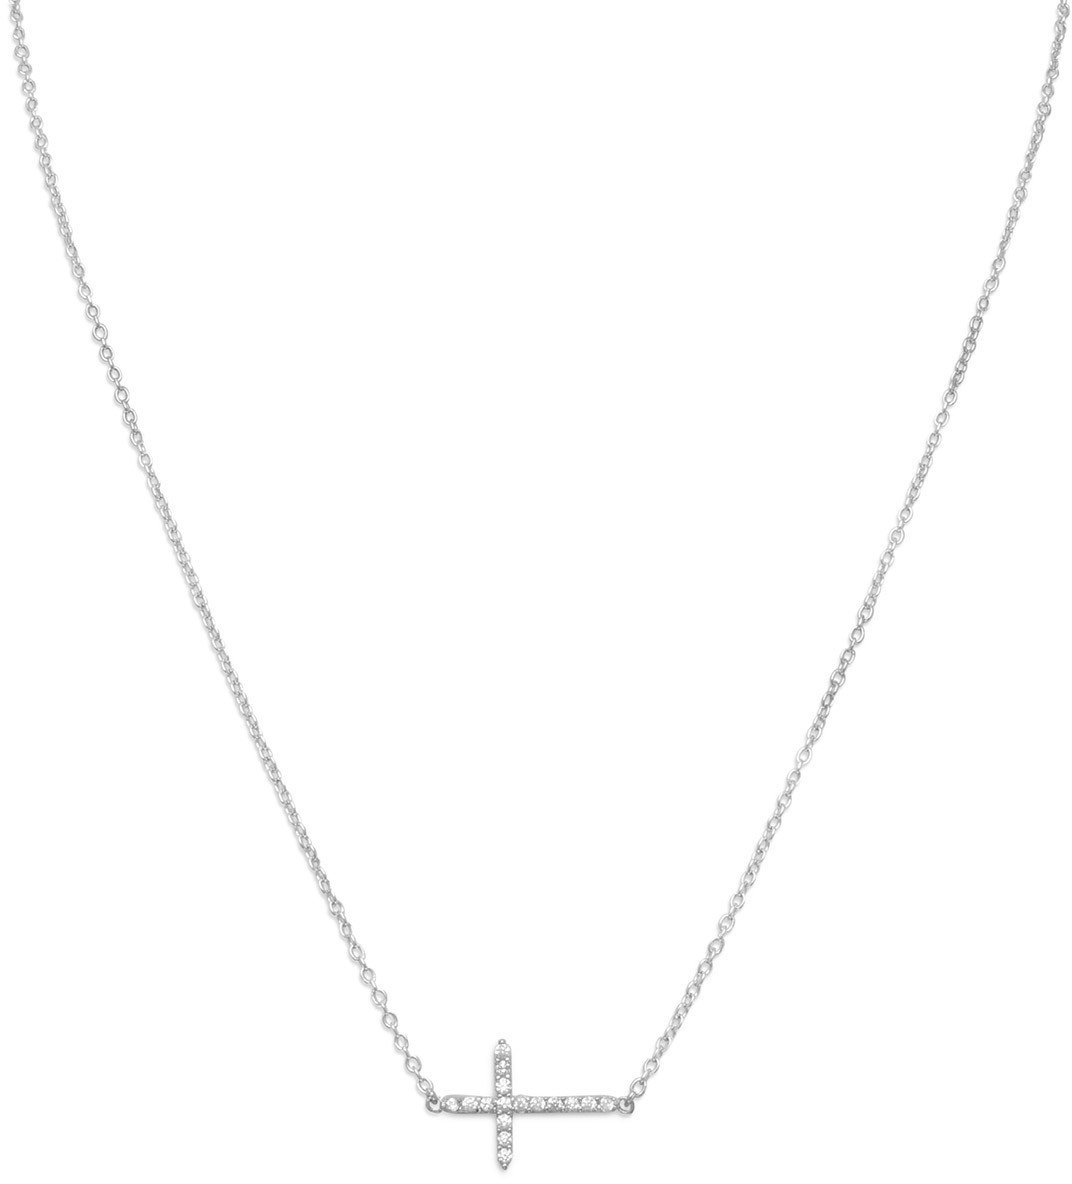 "16"" + 2"" Rhodium Plated CZ Sideways Cross Necklace 925 Sterling Silver"